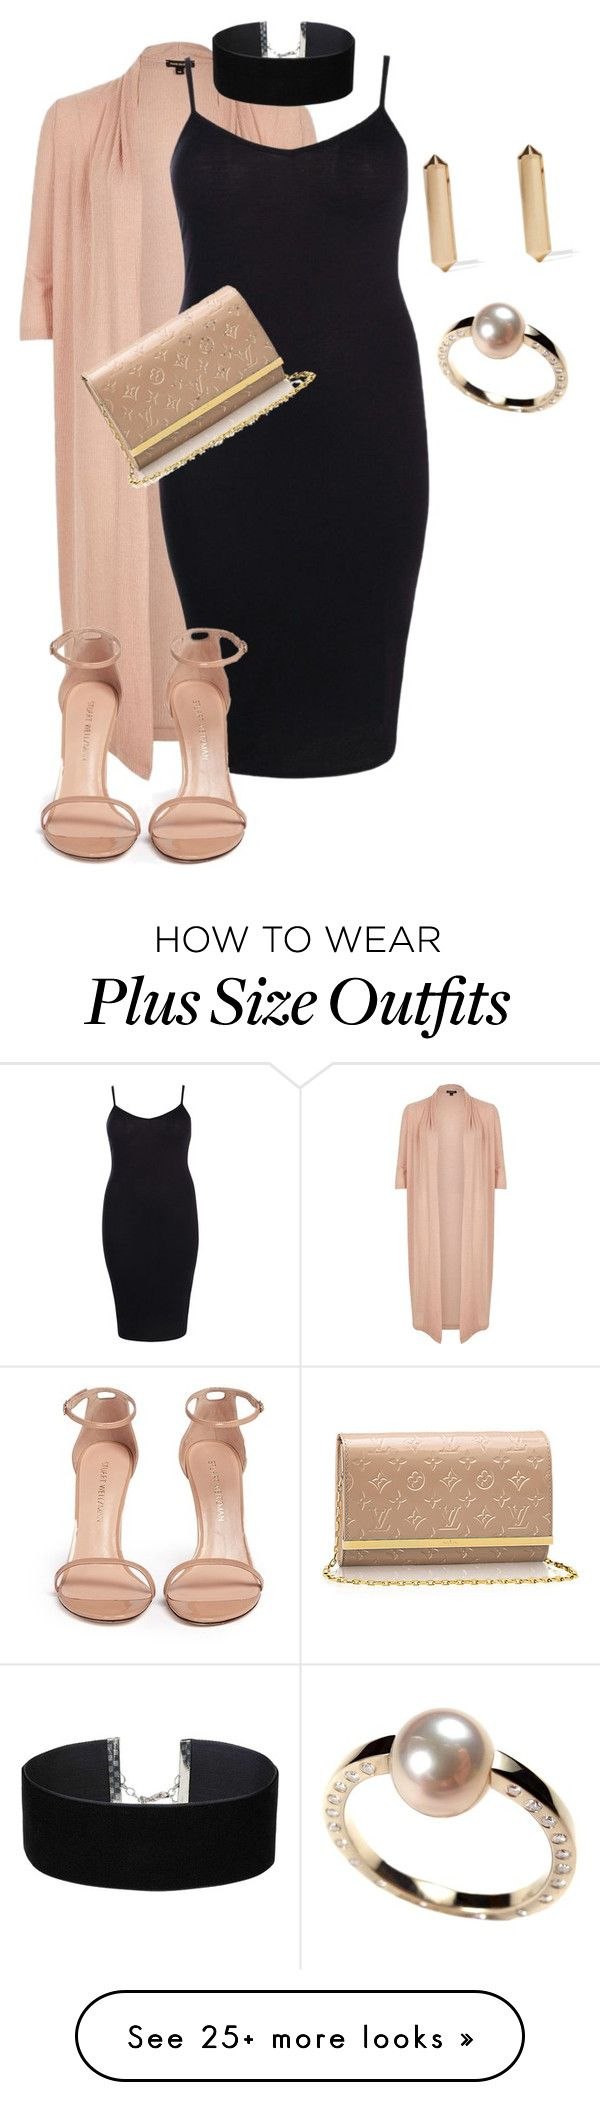 """Plus size beyond diva"" by xtrak on Polyvore featuring River Island, Boohoo, Stuart Weitzman, Eddie Borgo and Miss Selfridge"